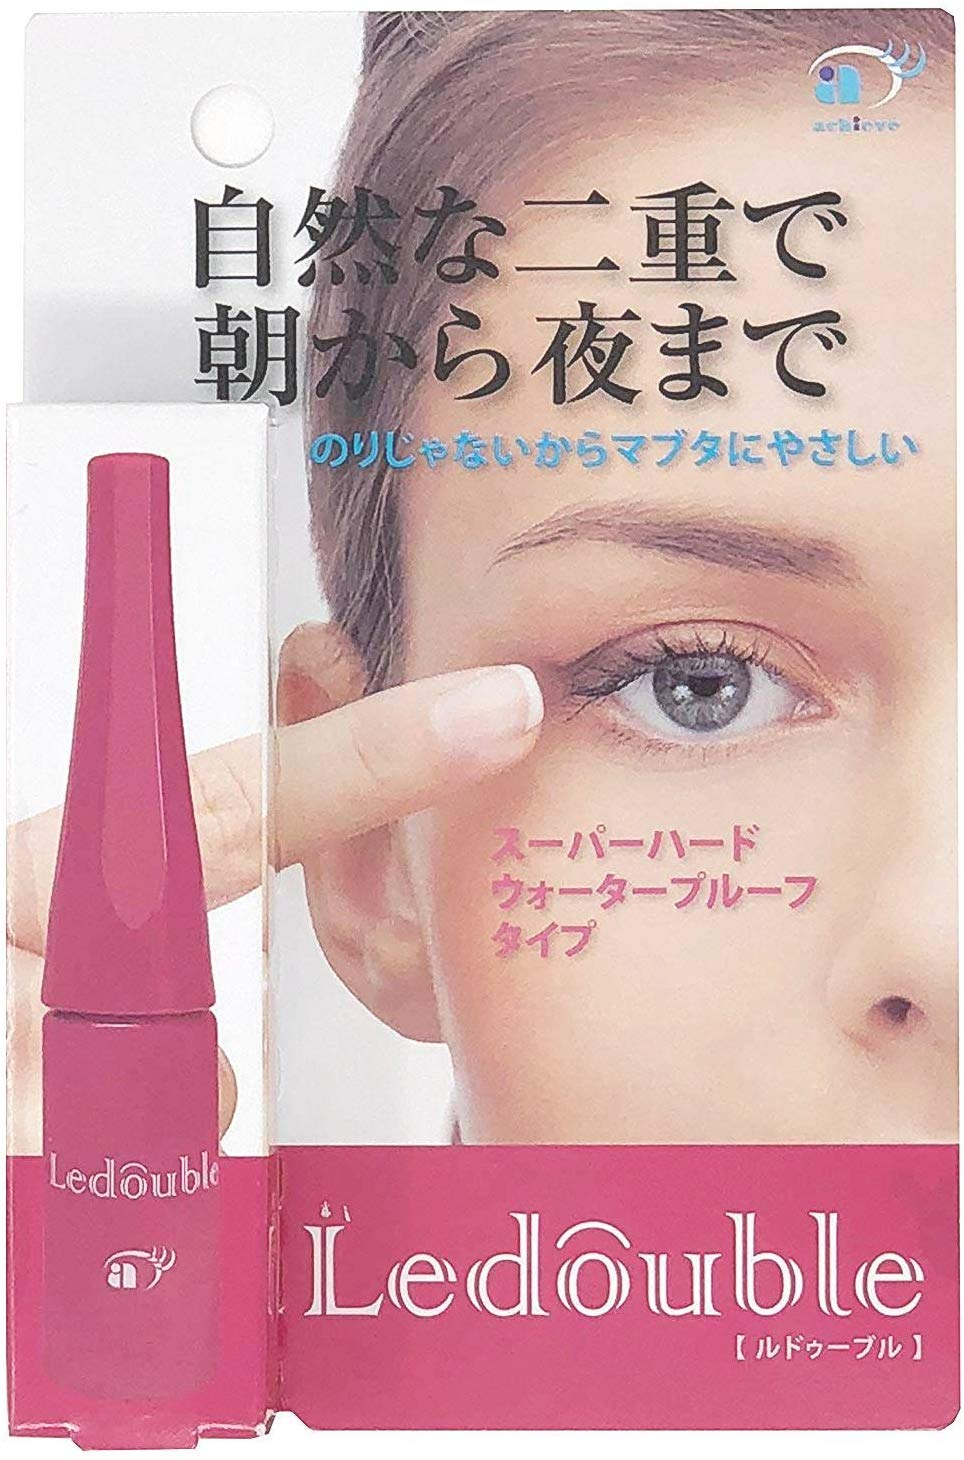 Ledouble Double Eyelid Forming Liquid 4ml